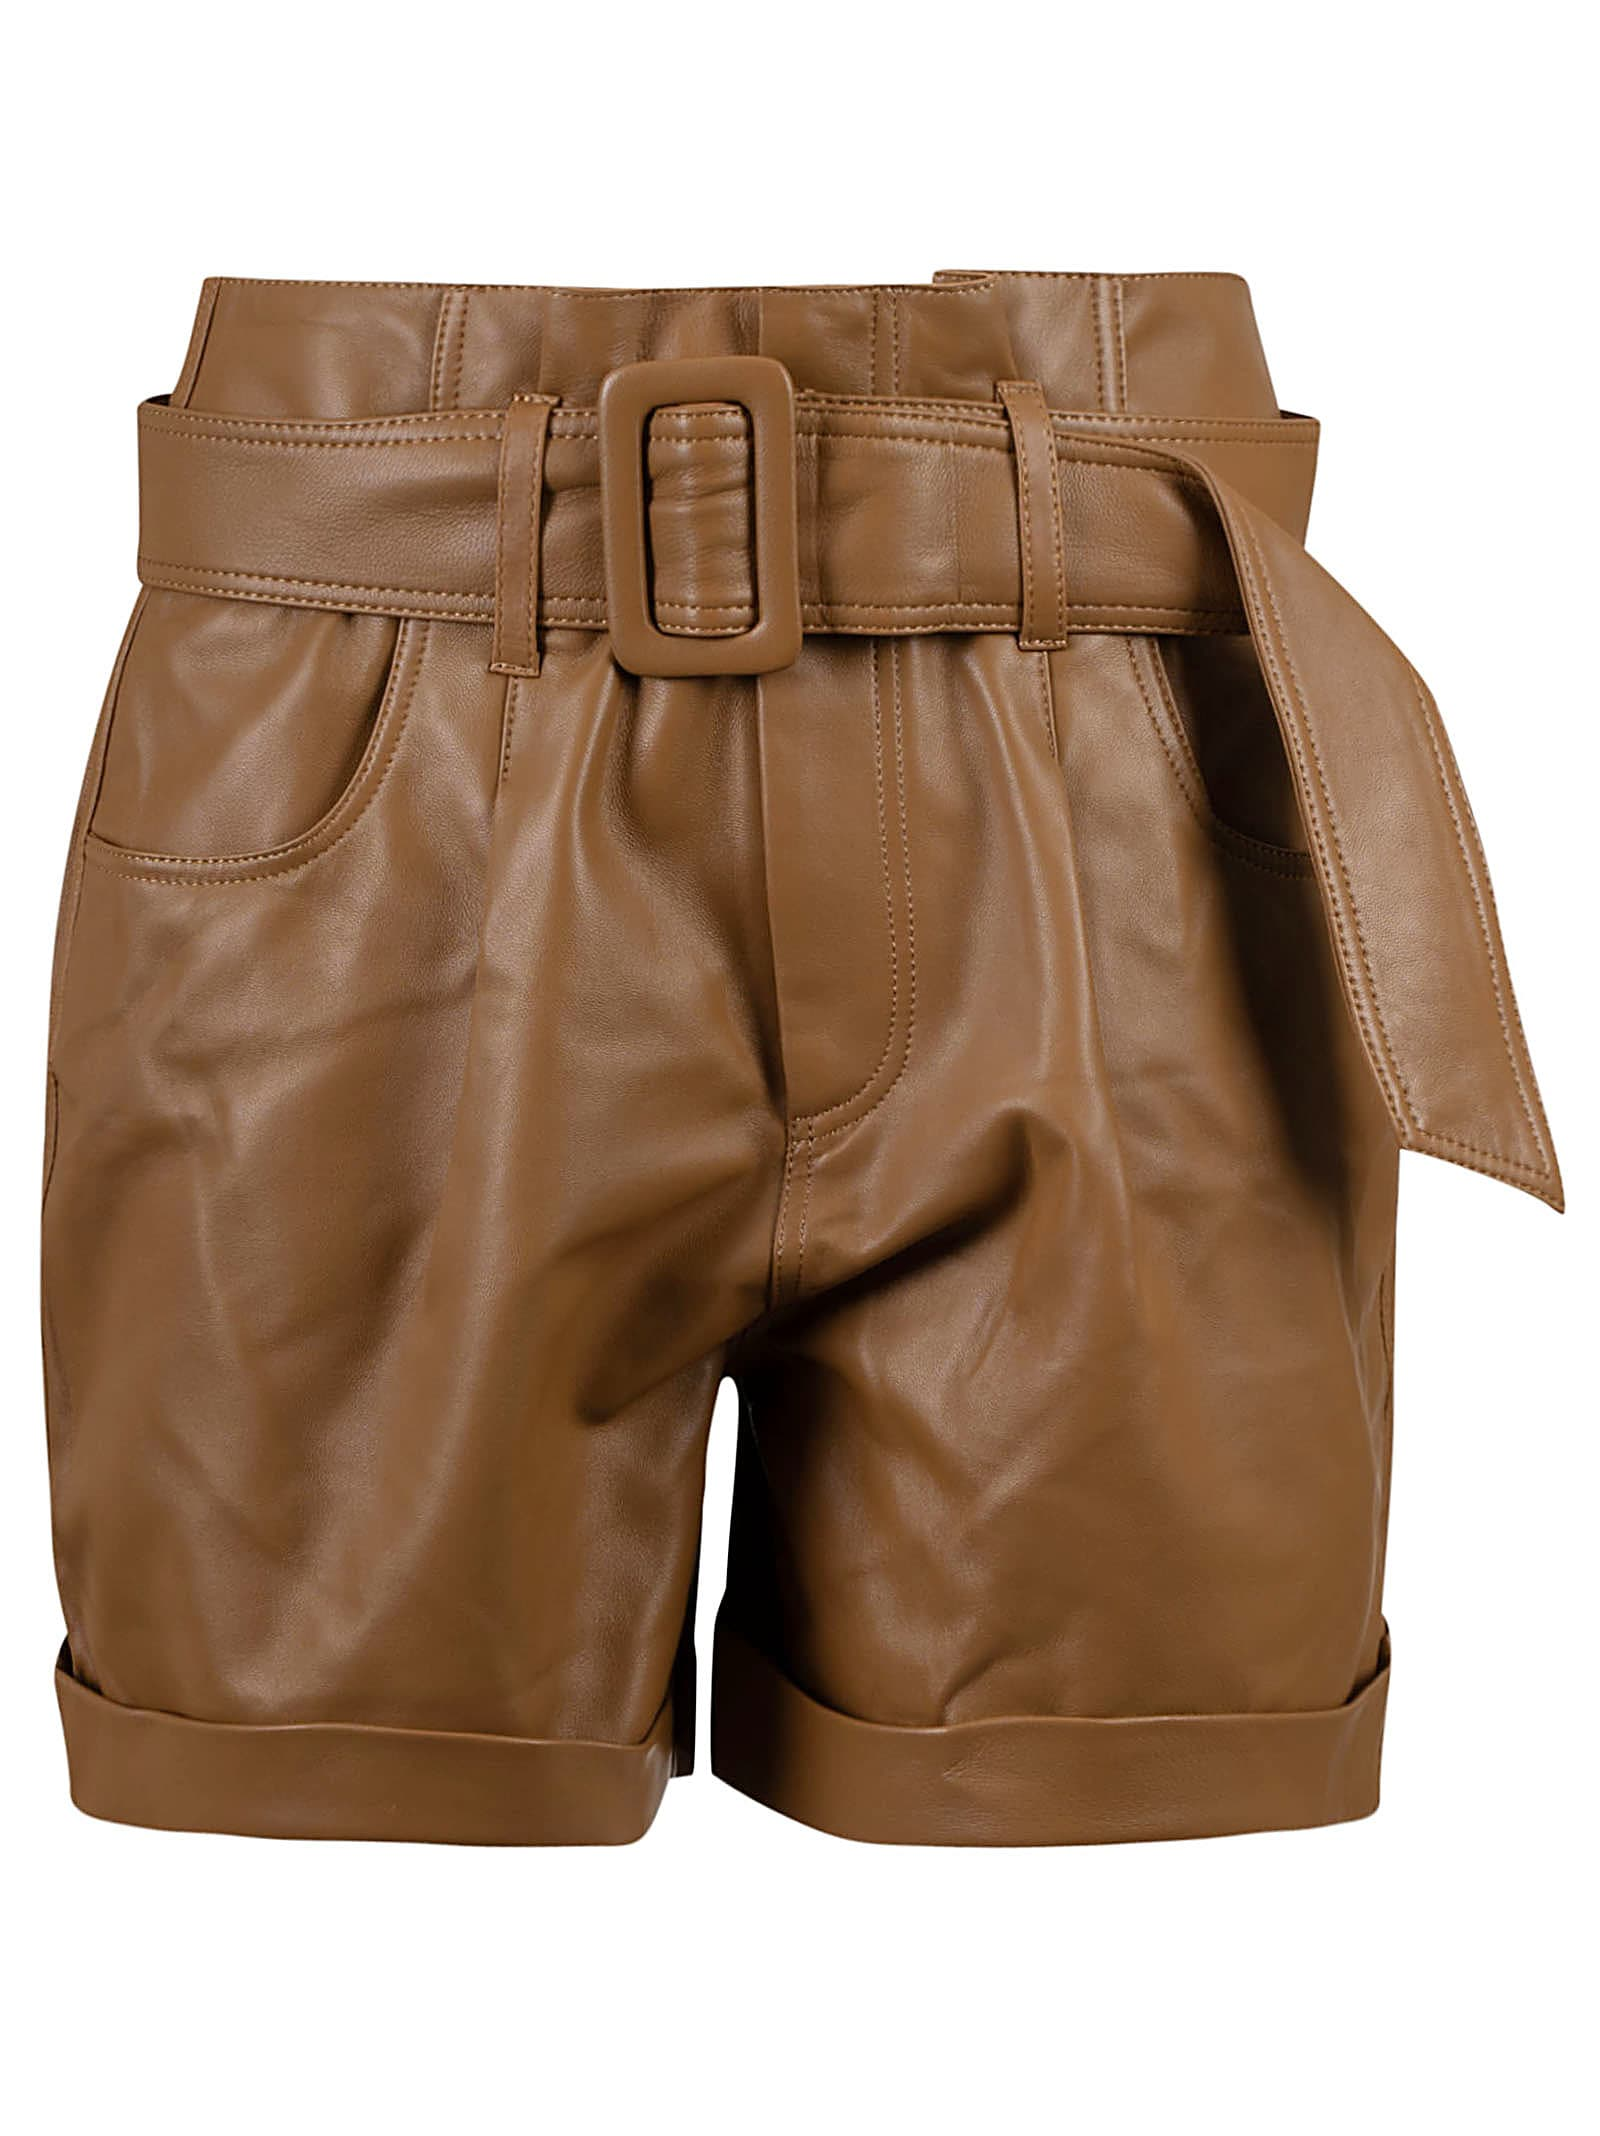 Federica Tosi Clothing BELTED SHORTS